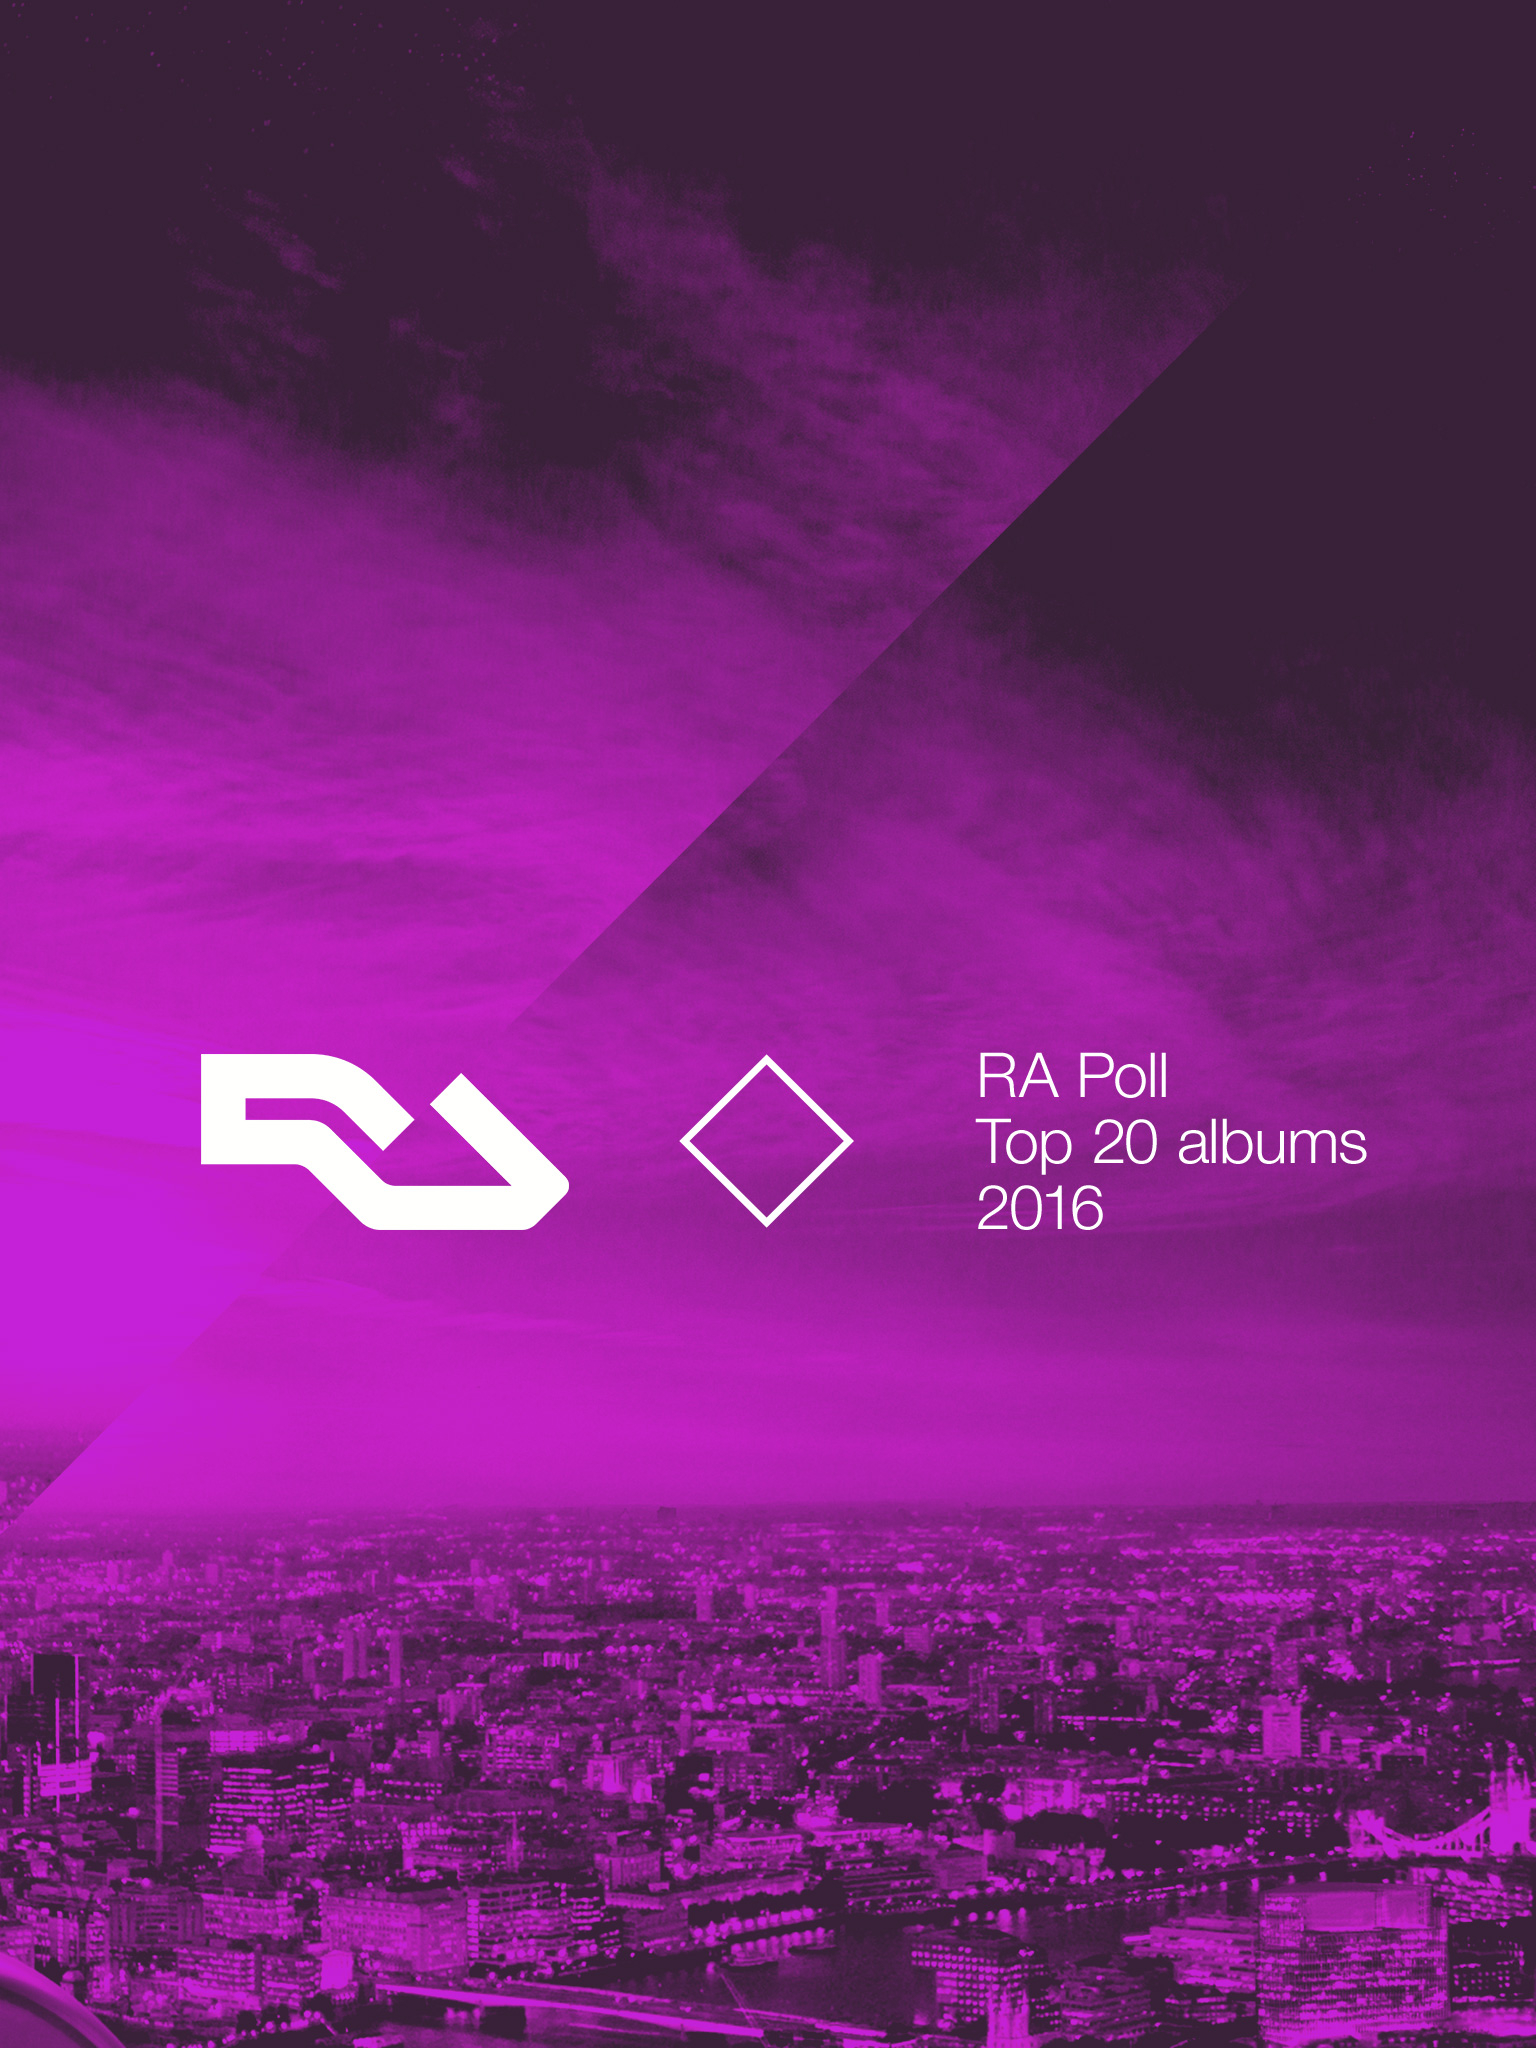 RA: RA Poll: Top 20 albums of 2016